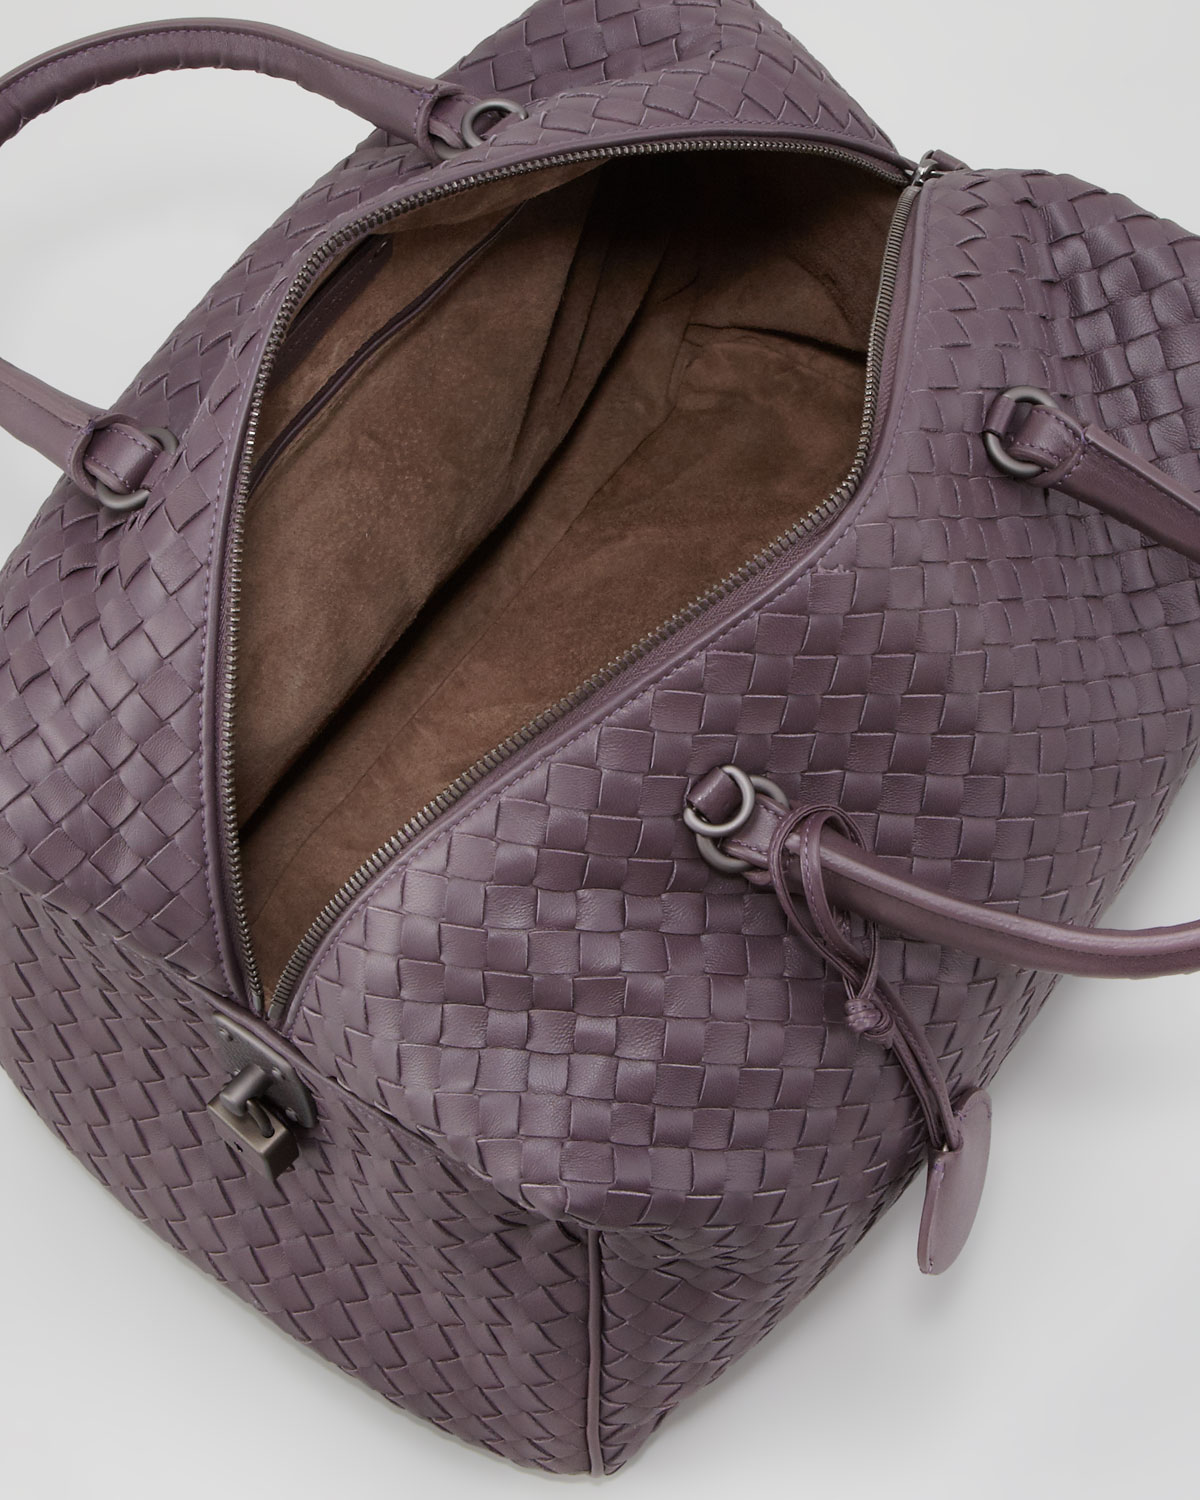 046a5211e449ab Bottega Veneta Large Boston Top Handle Bag in Purple - Lyst